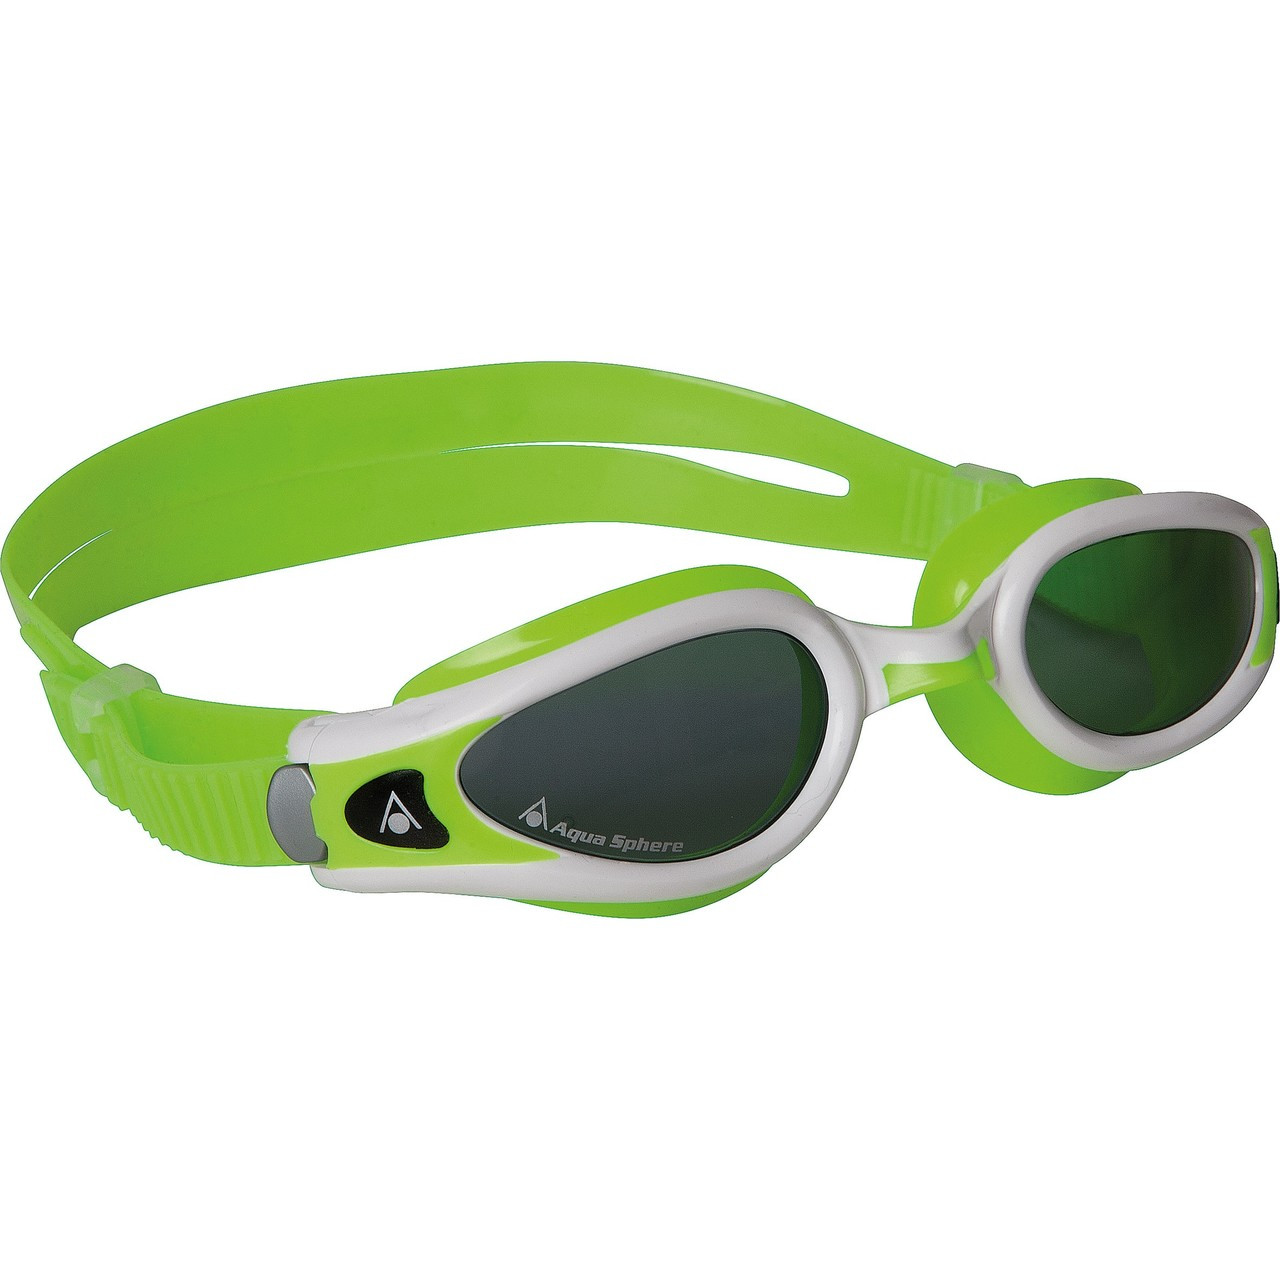 Aqua Sphere Kaiman EXO Goggle with Tinted Lens for Smaller Faces - 2017 price